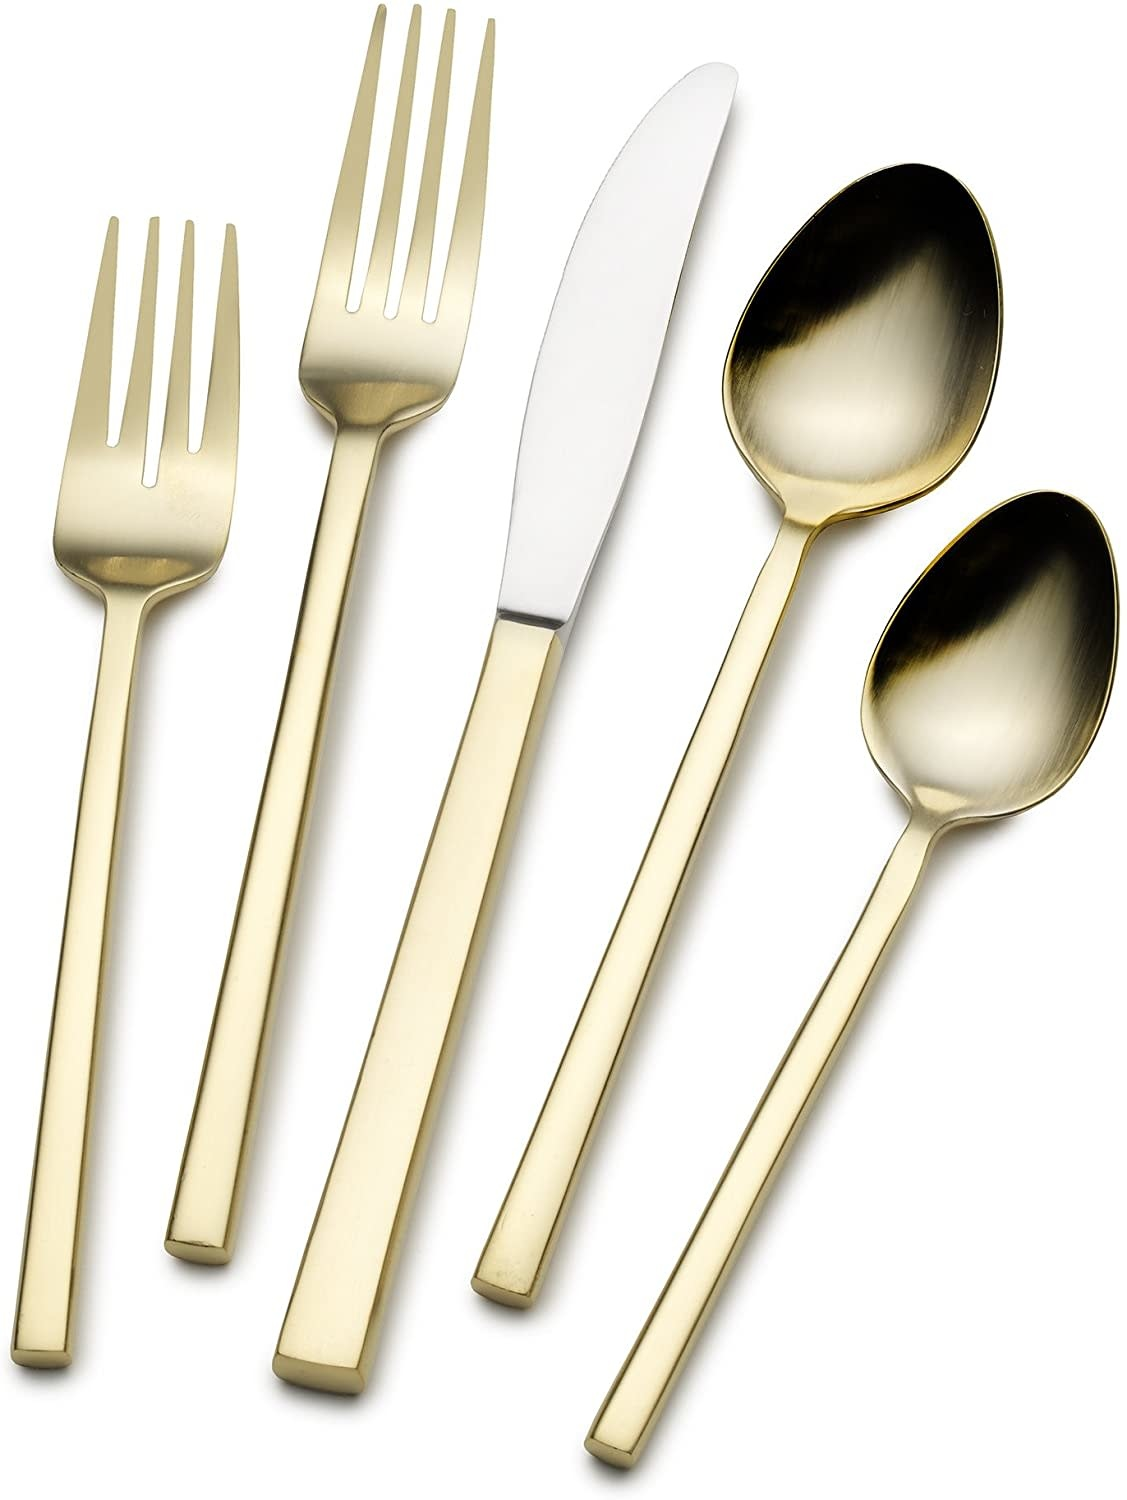 Kyoto Shiny Gold 20 pc Flatware Set